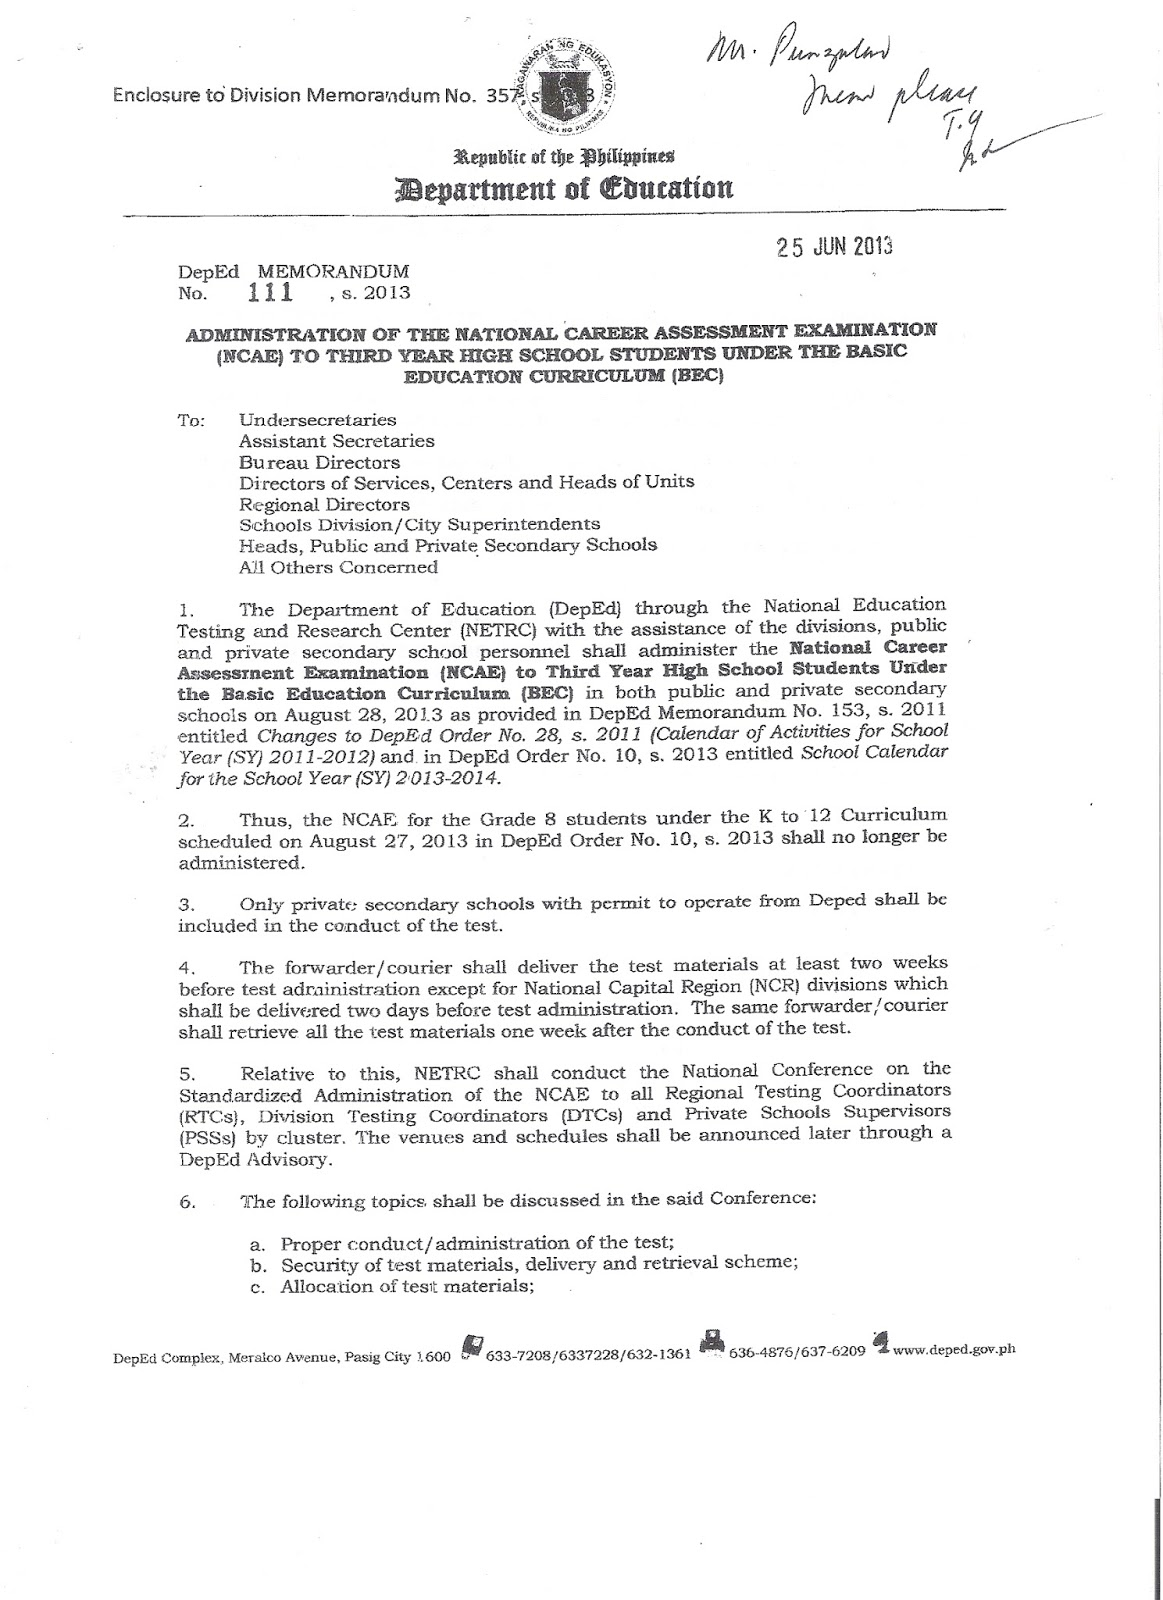 department of education manila memorandum no administration 357 administration of the national career assessment examination ncae to third year high school students under the basic education curriculum bec